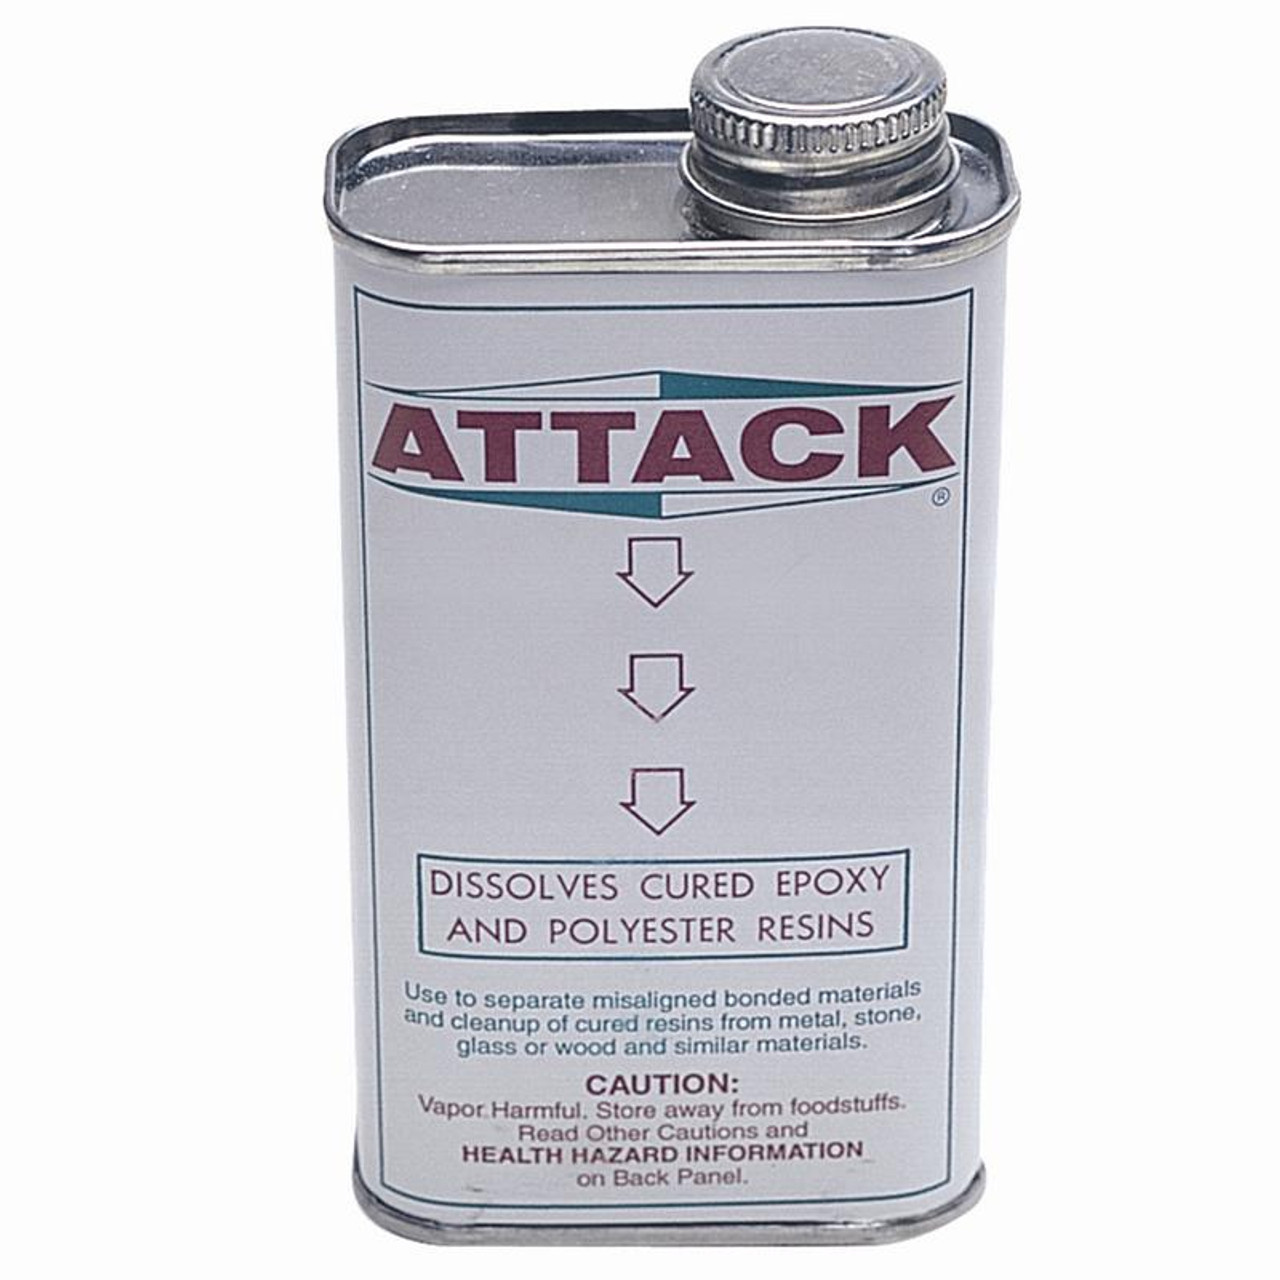 Attack Epoxy Resin and Adhesive Dissolver Solvent Remover and Cleaner